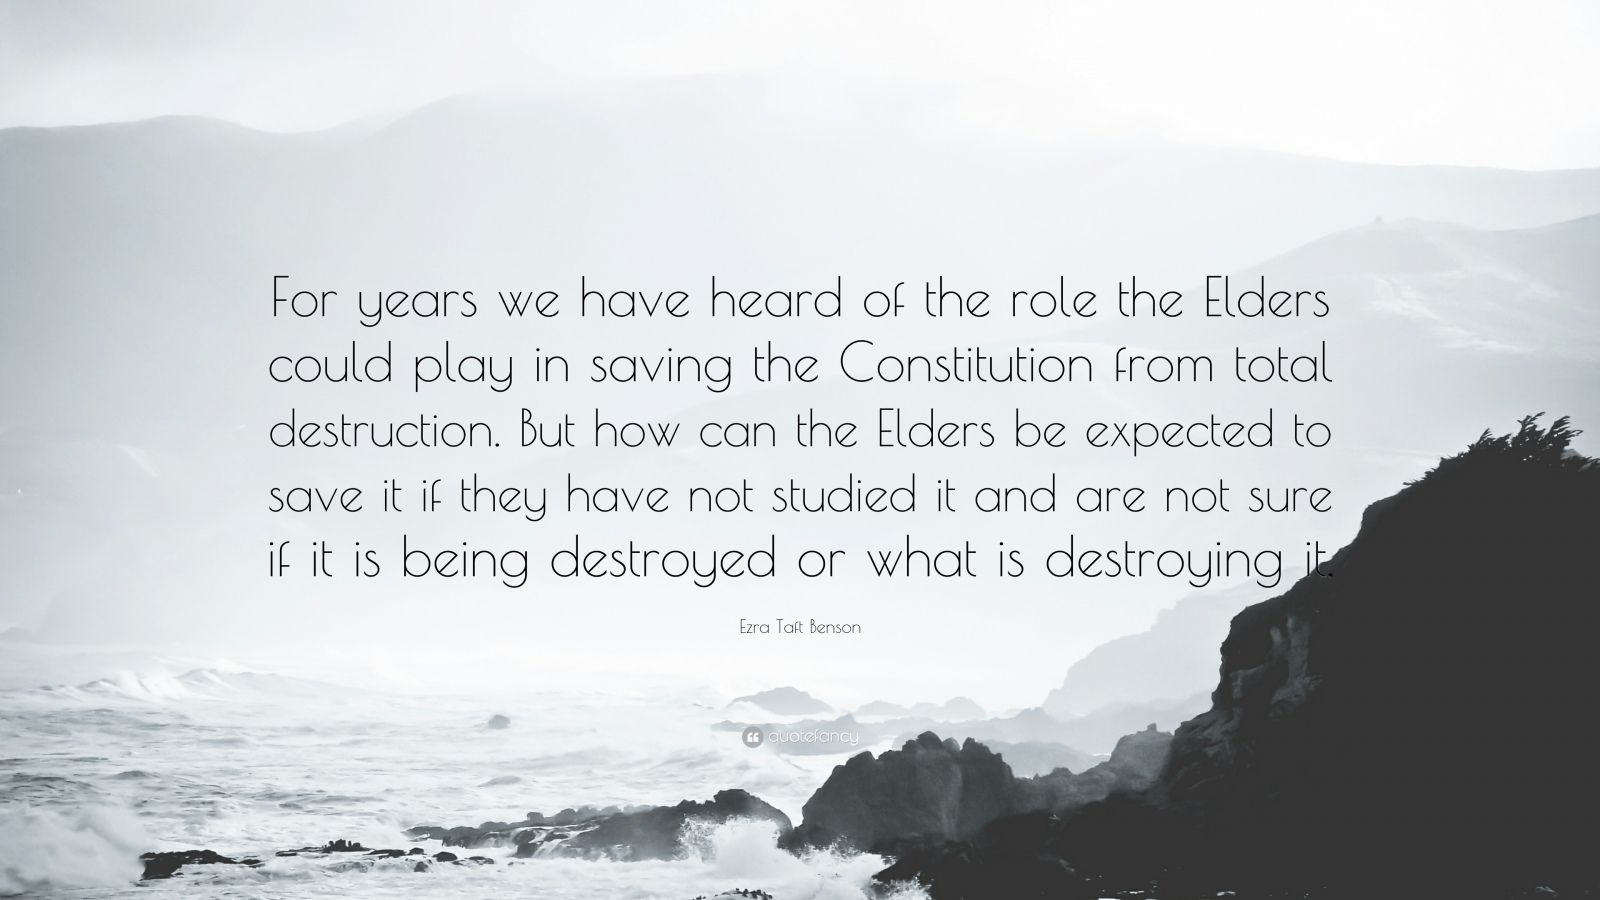 """Ezra Taft Benson Quote: """"For years we have heard of the role the Elders could play in saving the Constitution from total destruction. But how can the Elders be expected to save it if they have not studied it and are not sure if it is being destroyed or what is destroying it."""""""